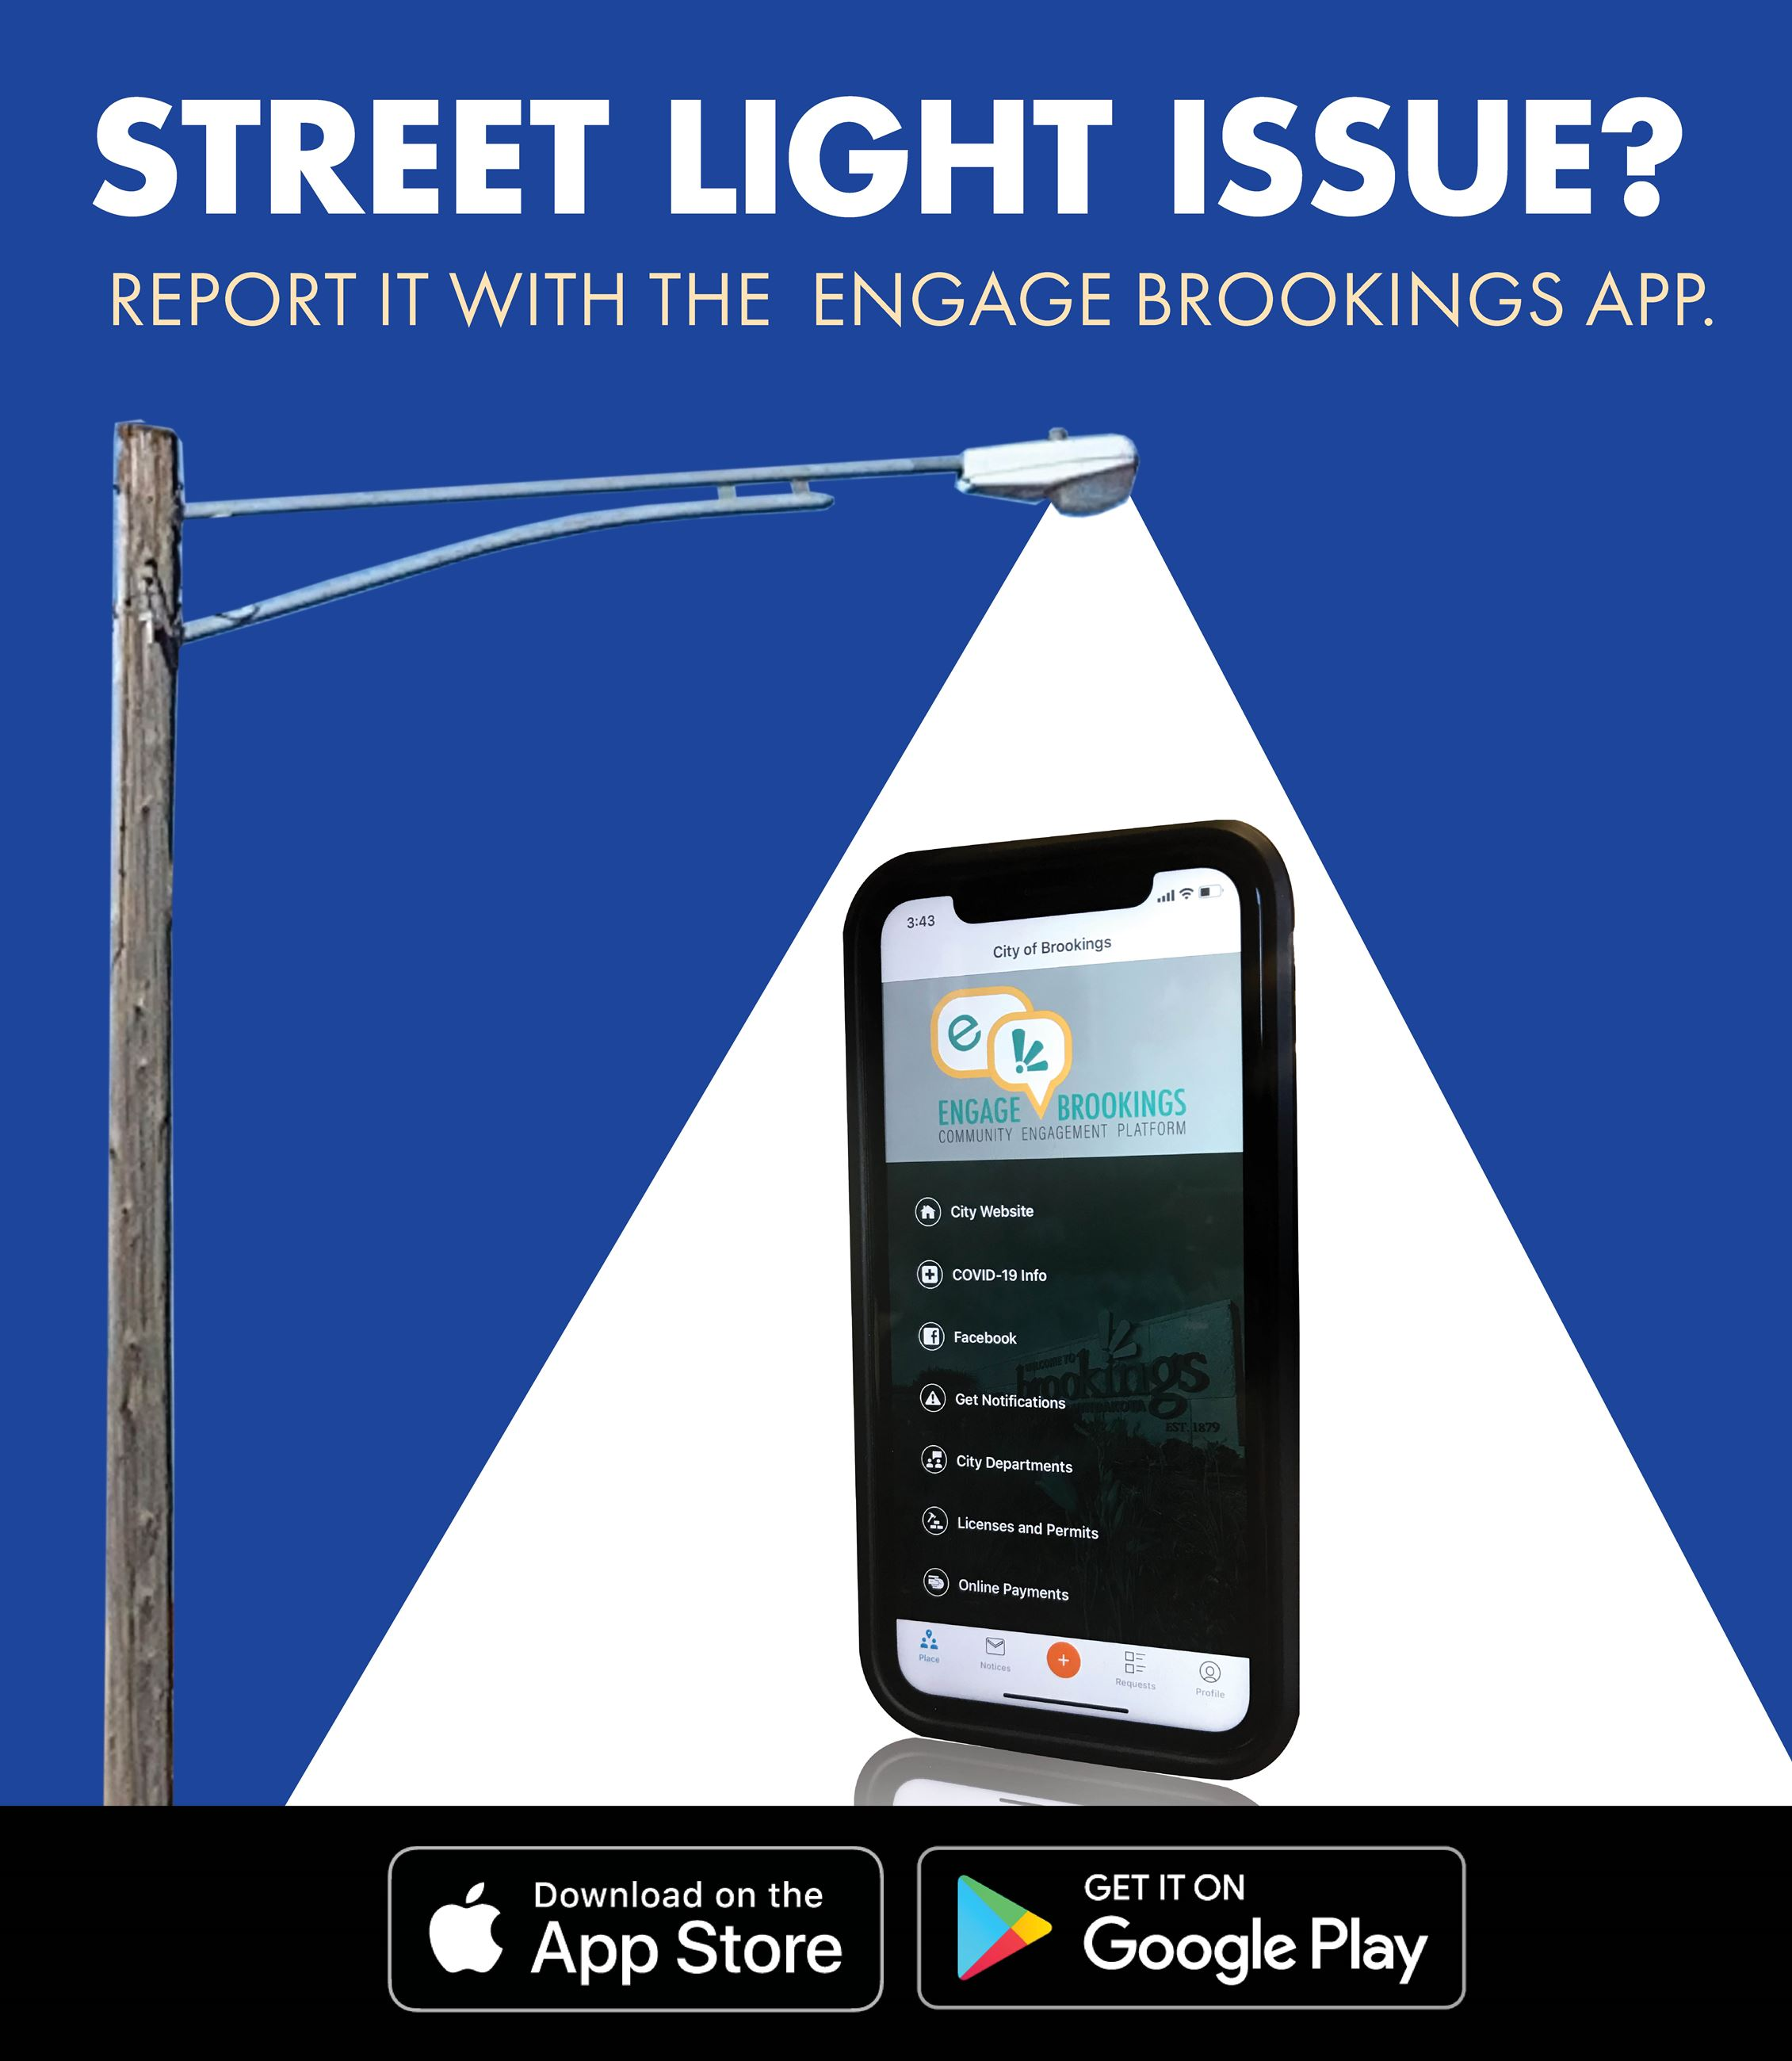 Street Light Issue? Report it with the Engage Brookings App: Available on the app stores.